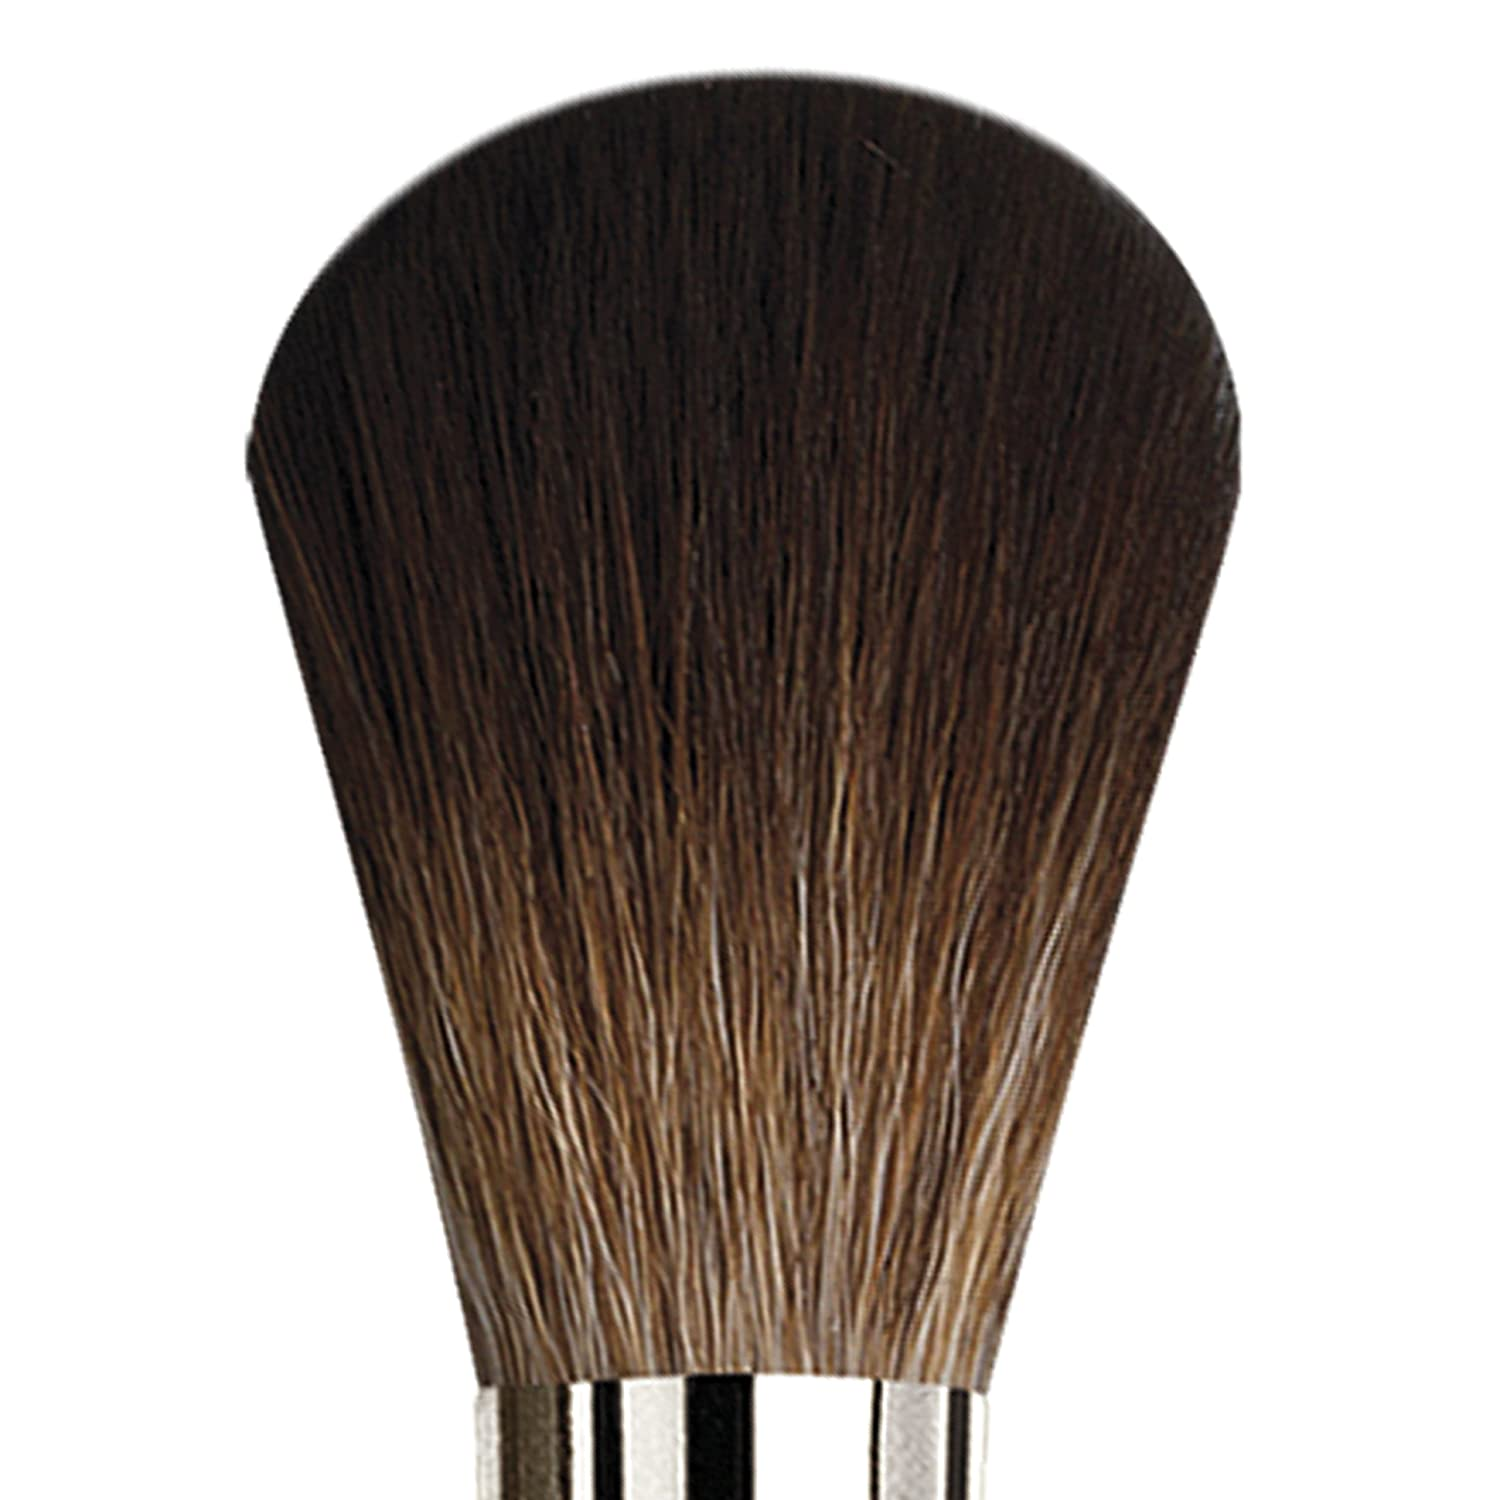 Amazon.com: da Vinci Cosmetics Series 90747 Synique Blusher Brush, Round Synthetic, 1.87 Ounce: Beauty